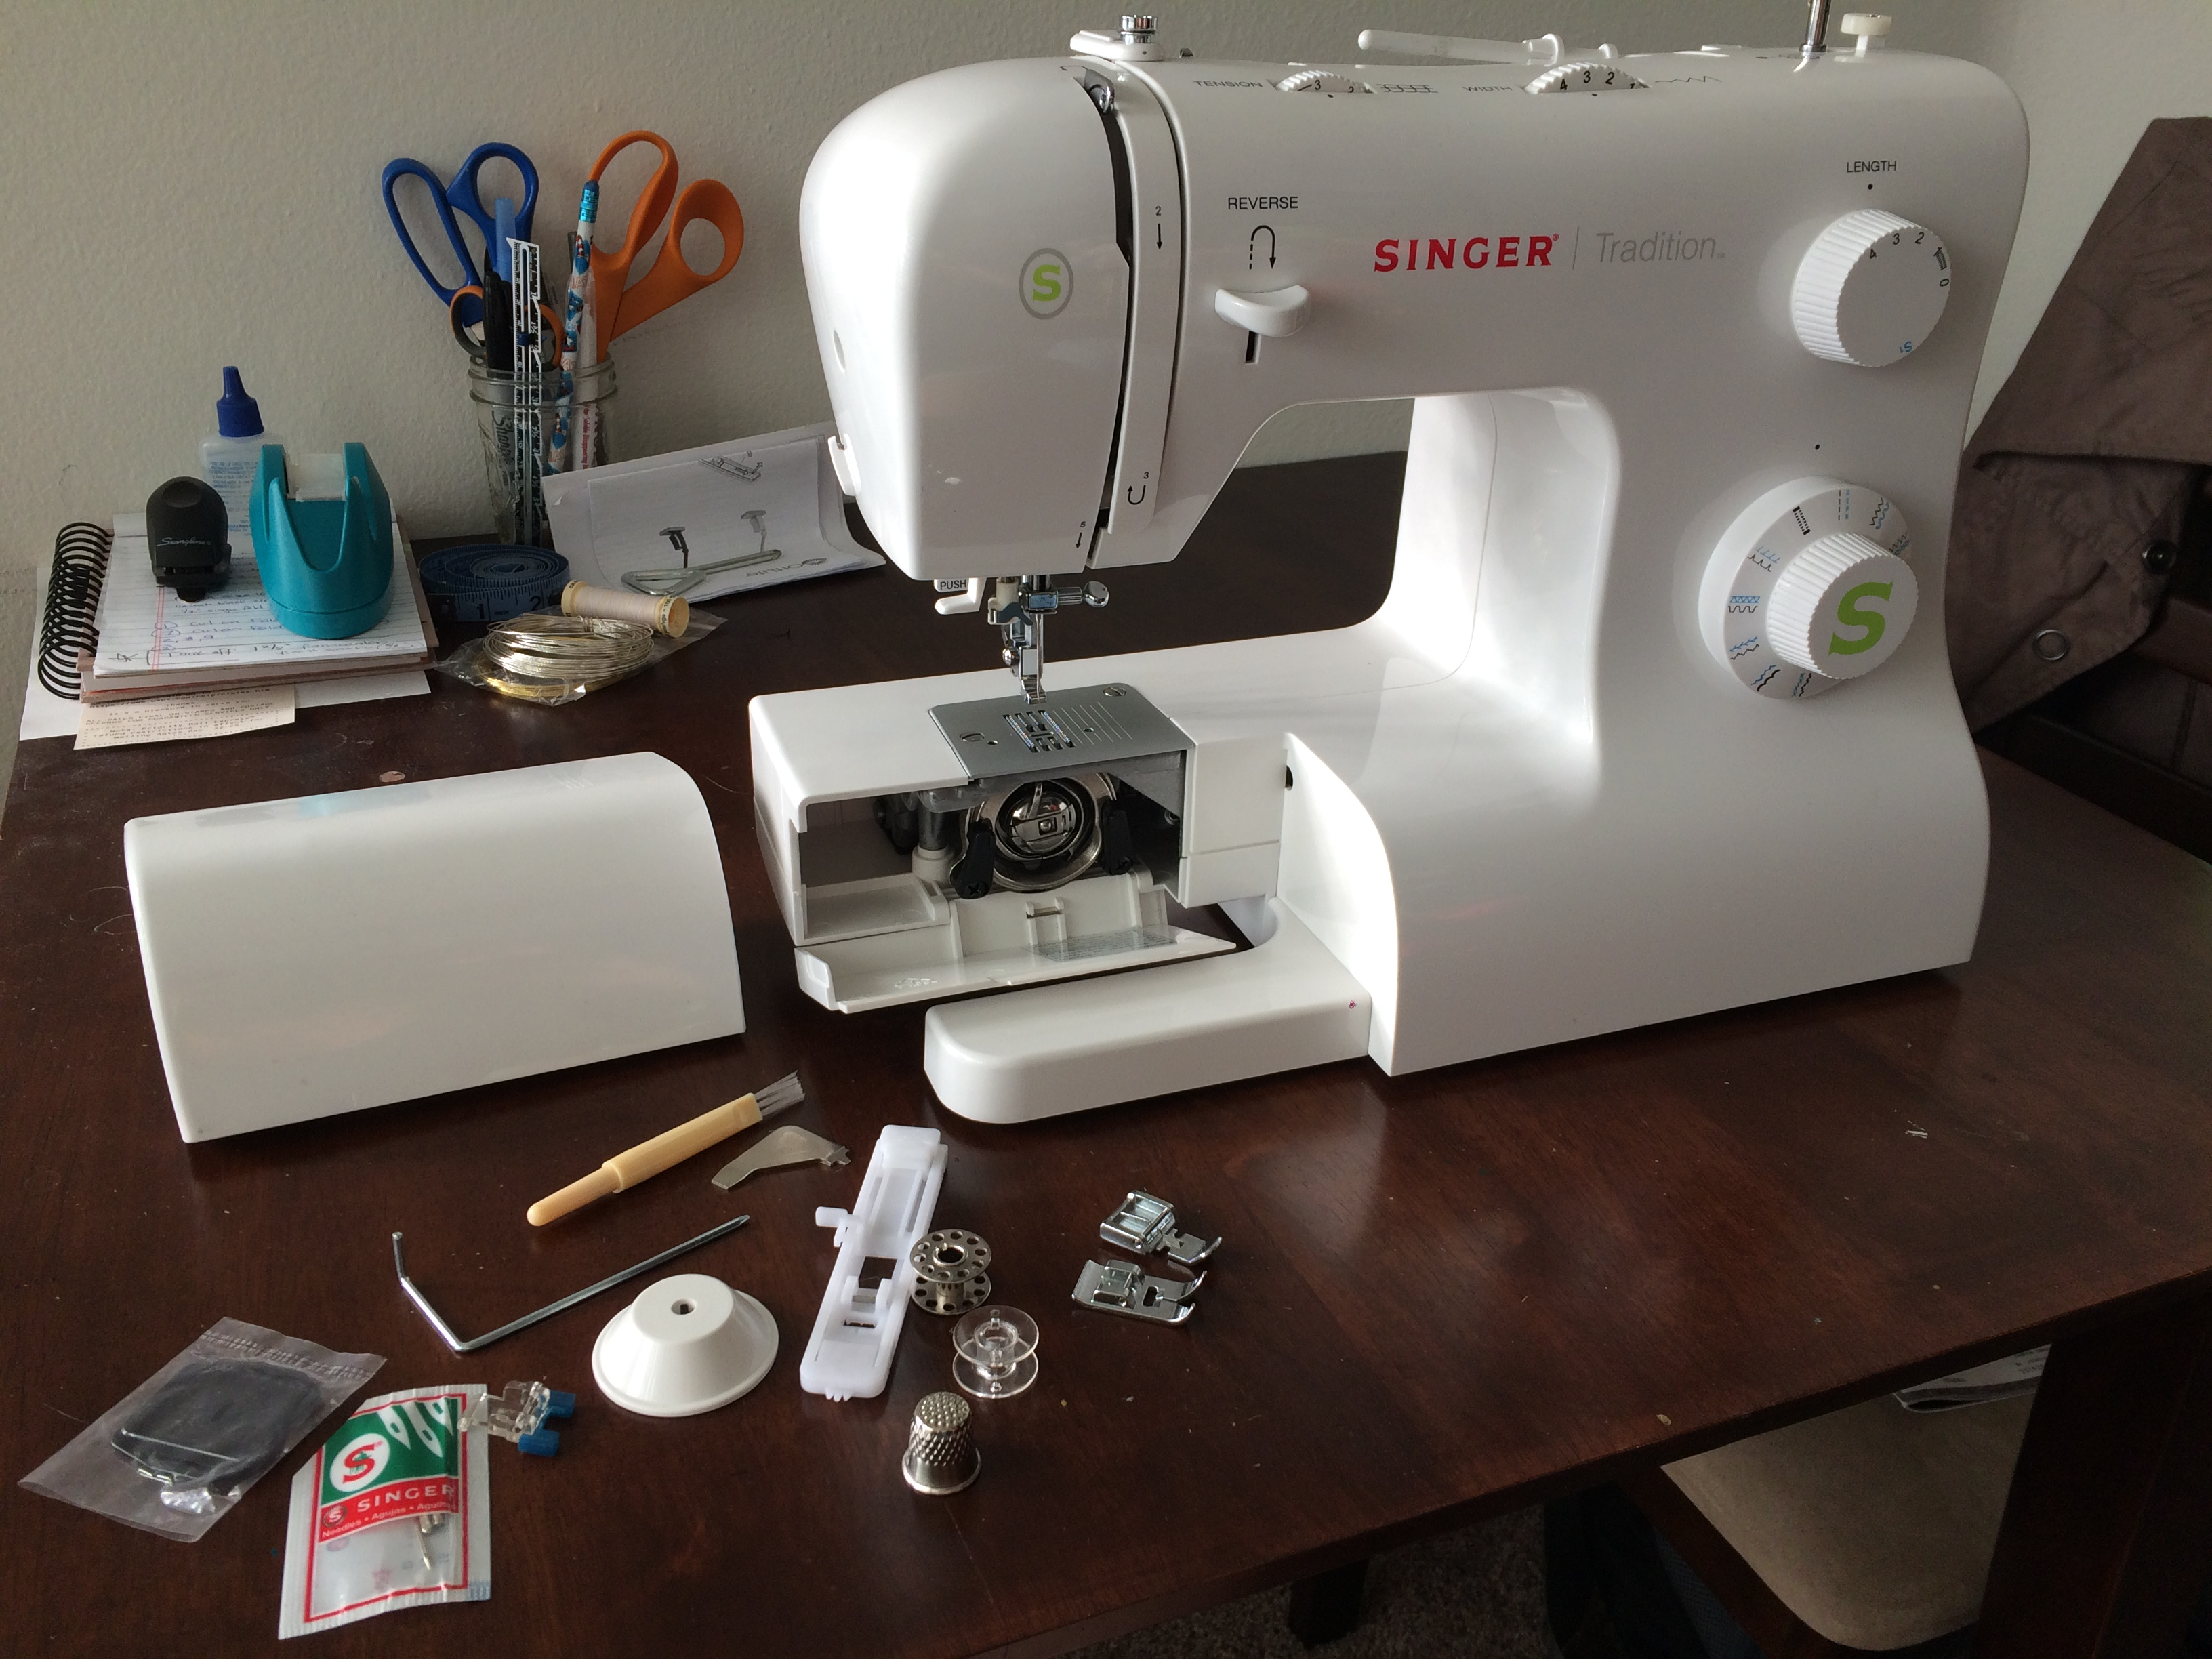 singer 2277 tradition sewing machine reviews